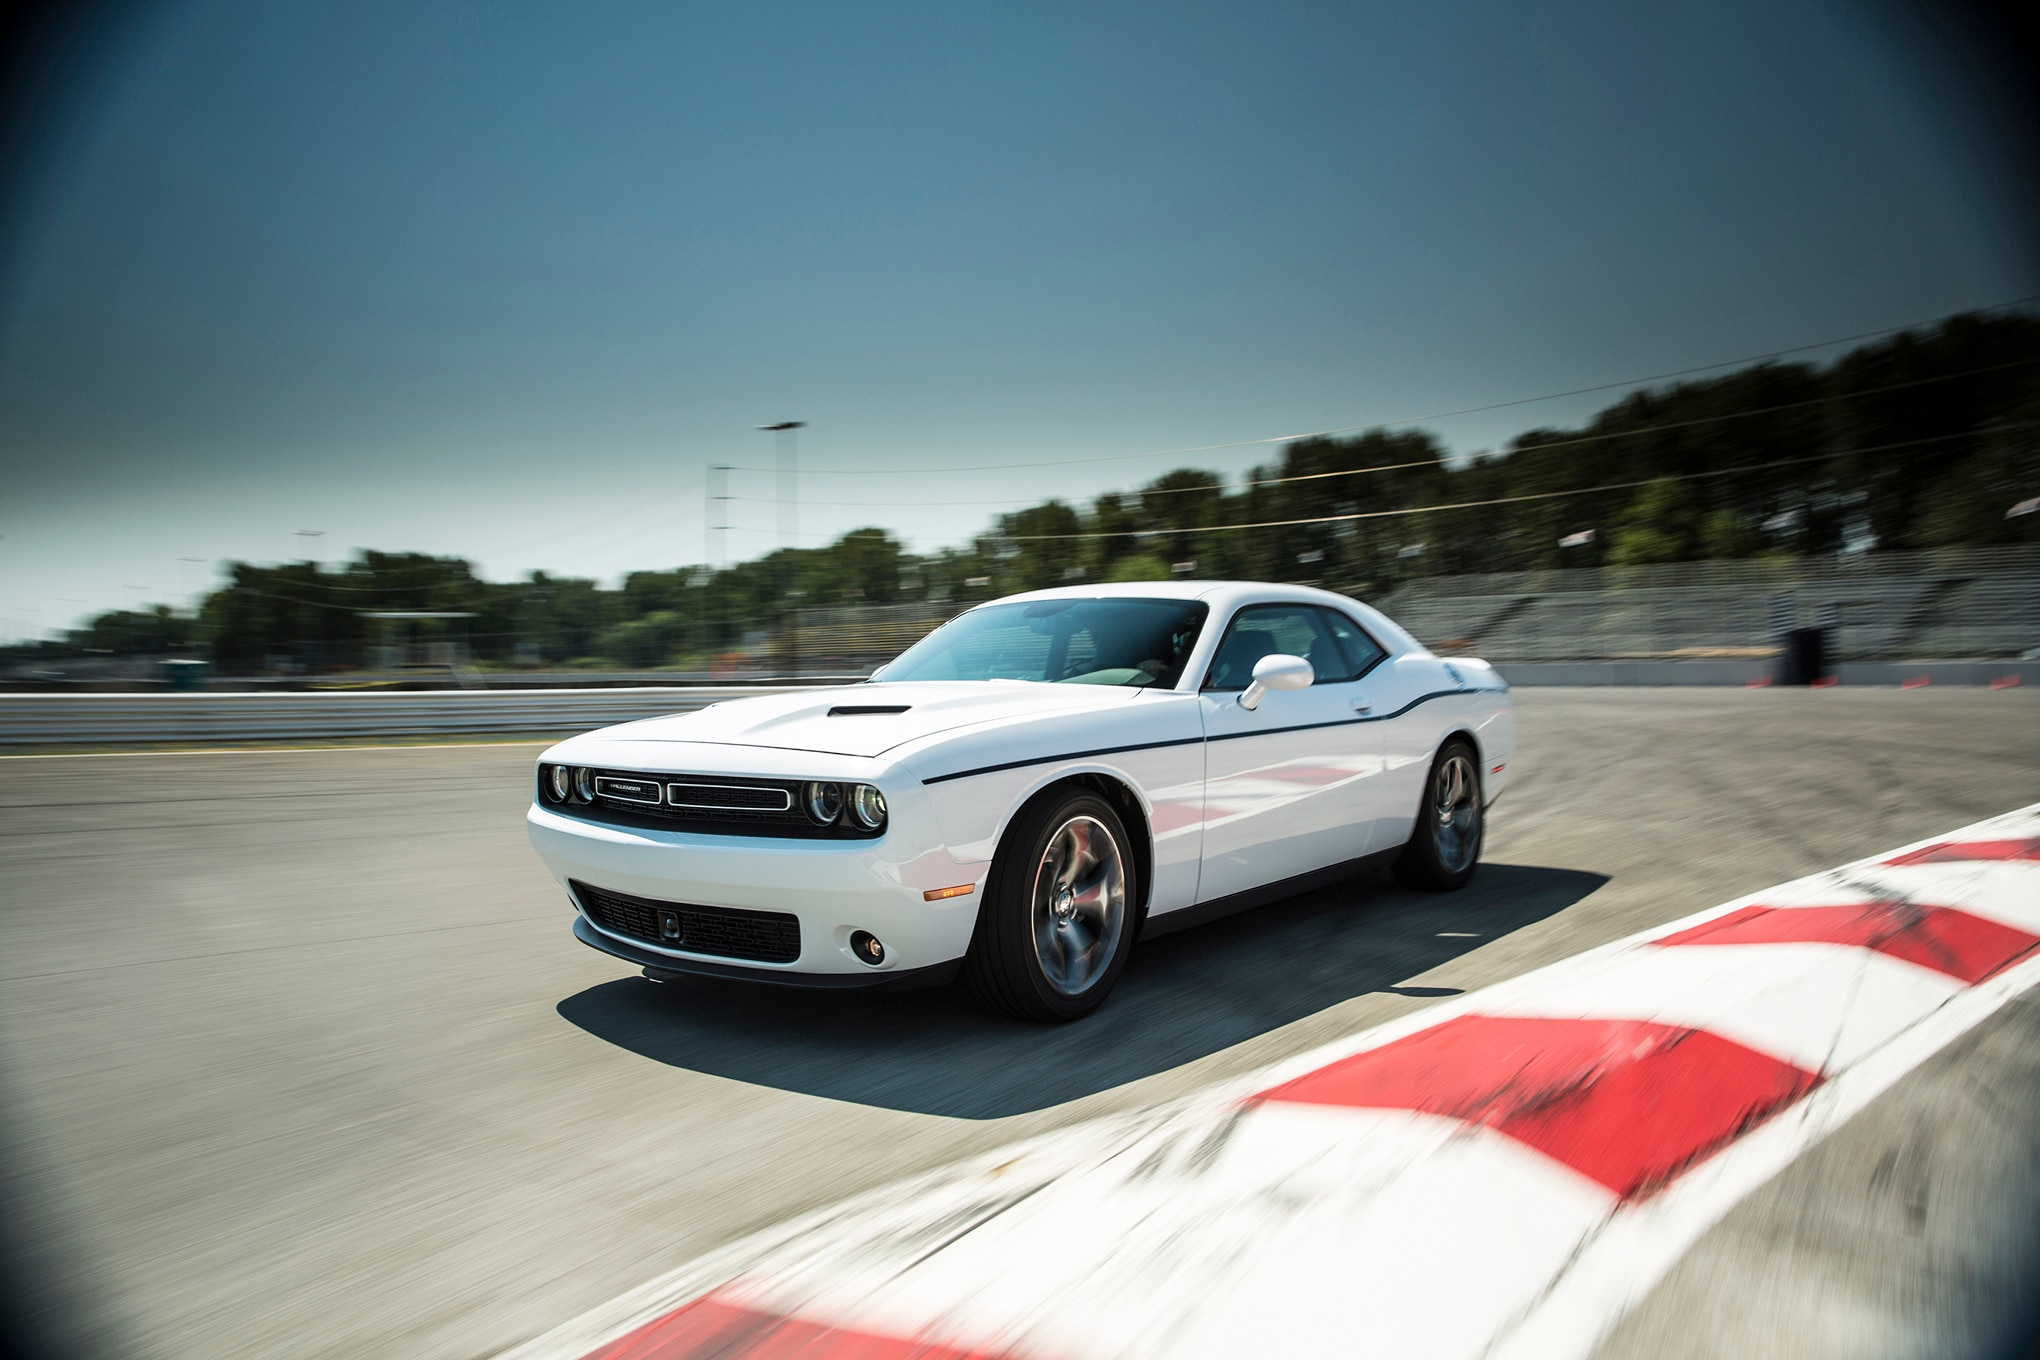 Used 2009 Dodge Challenger For Sale  CarGurus